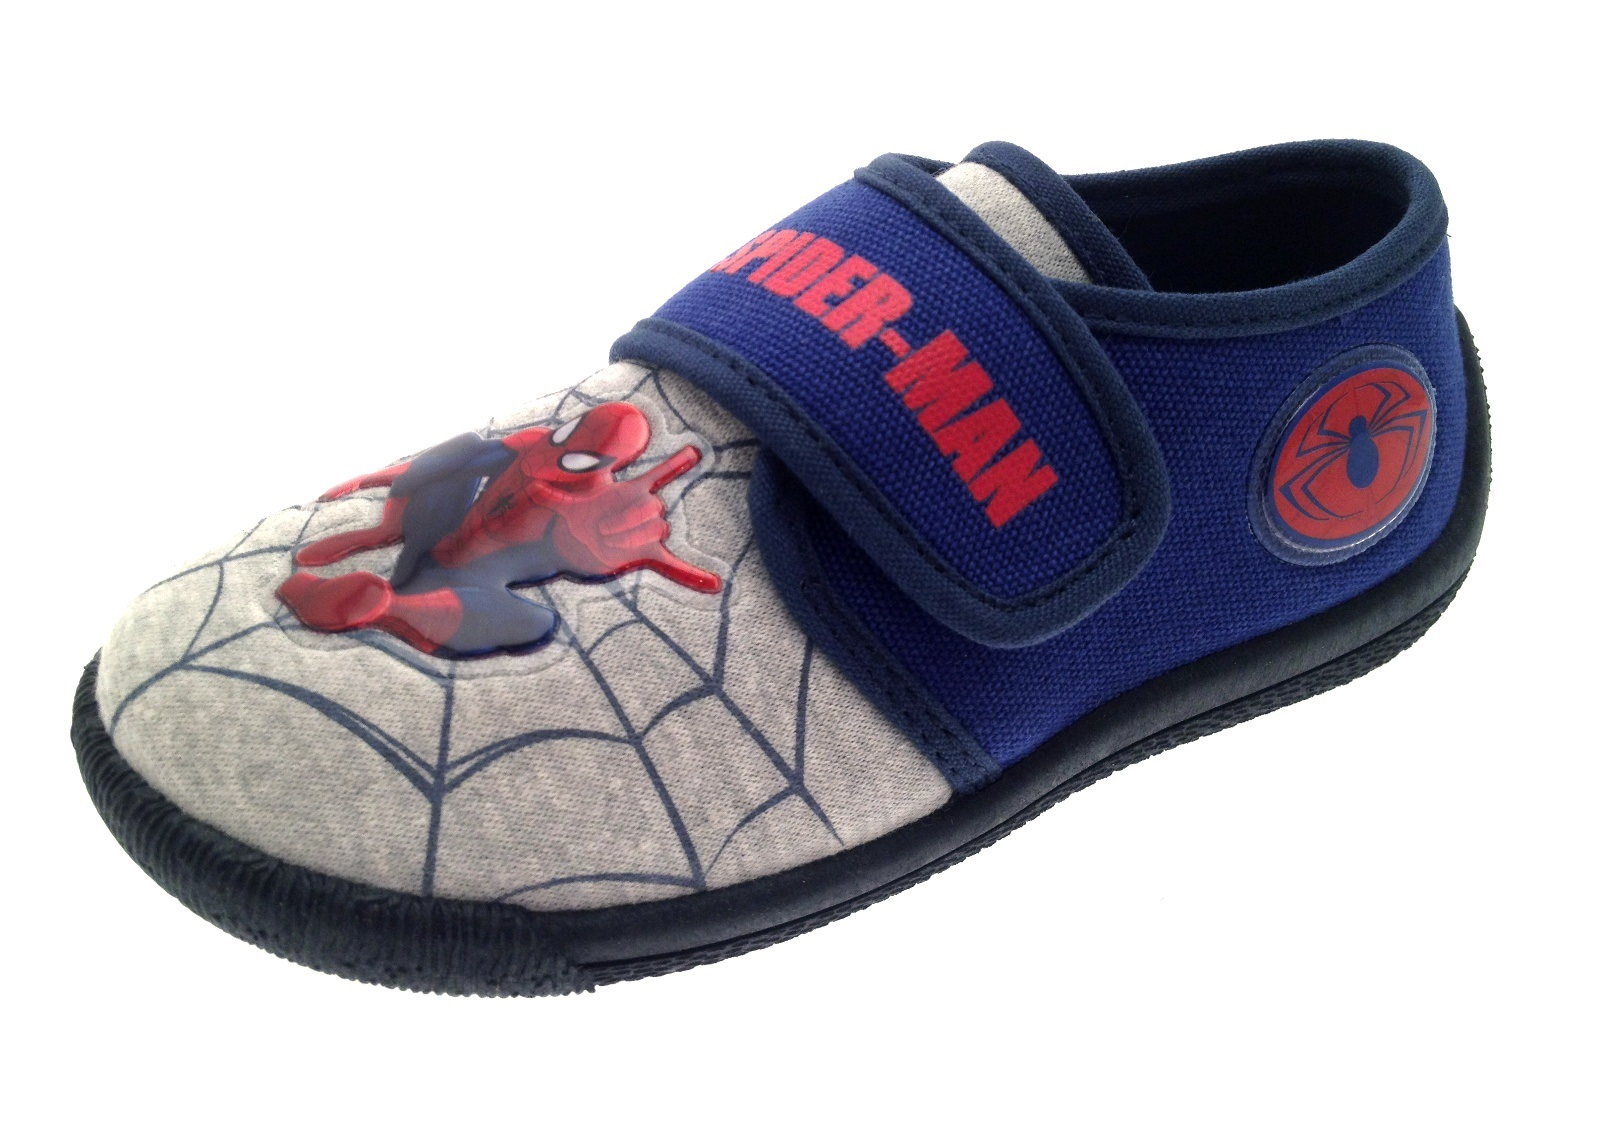 These plush Spider-Man slippers featuring embroidered details and non-slip soles will have your little one web-swinging and slinging adventure by bedtime.